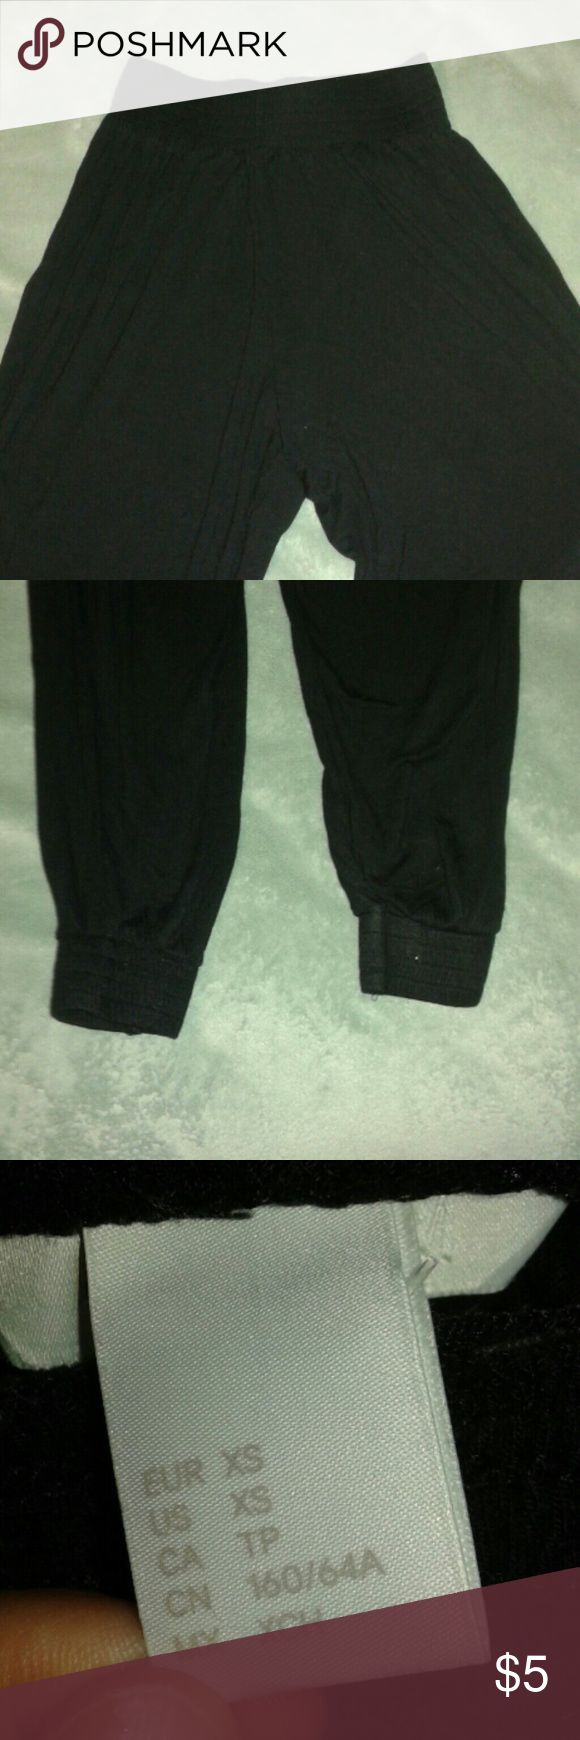 Black Haram/Parachute Pants Super comfy only worn 4 times. Soft fabric, size xs. H&M Pants